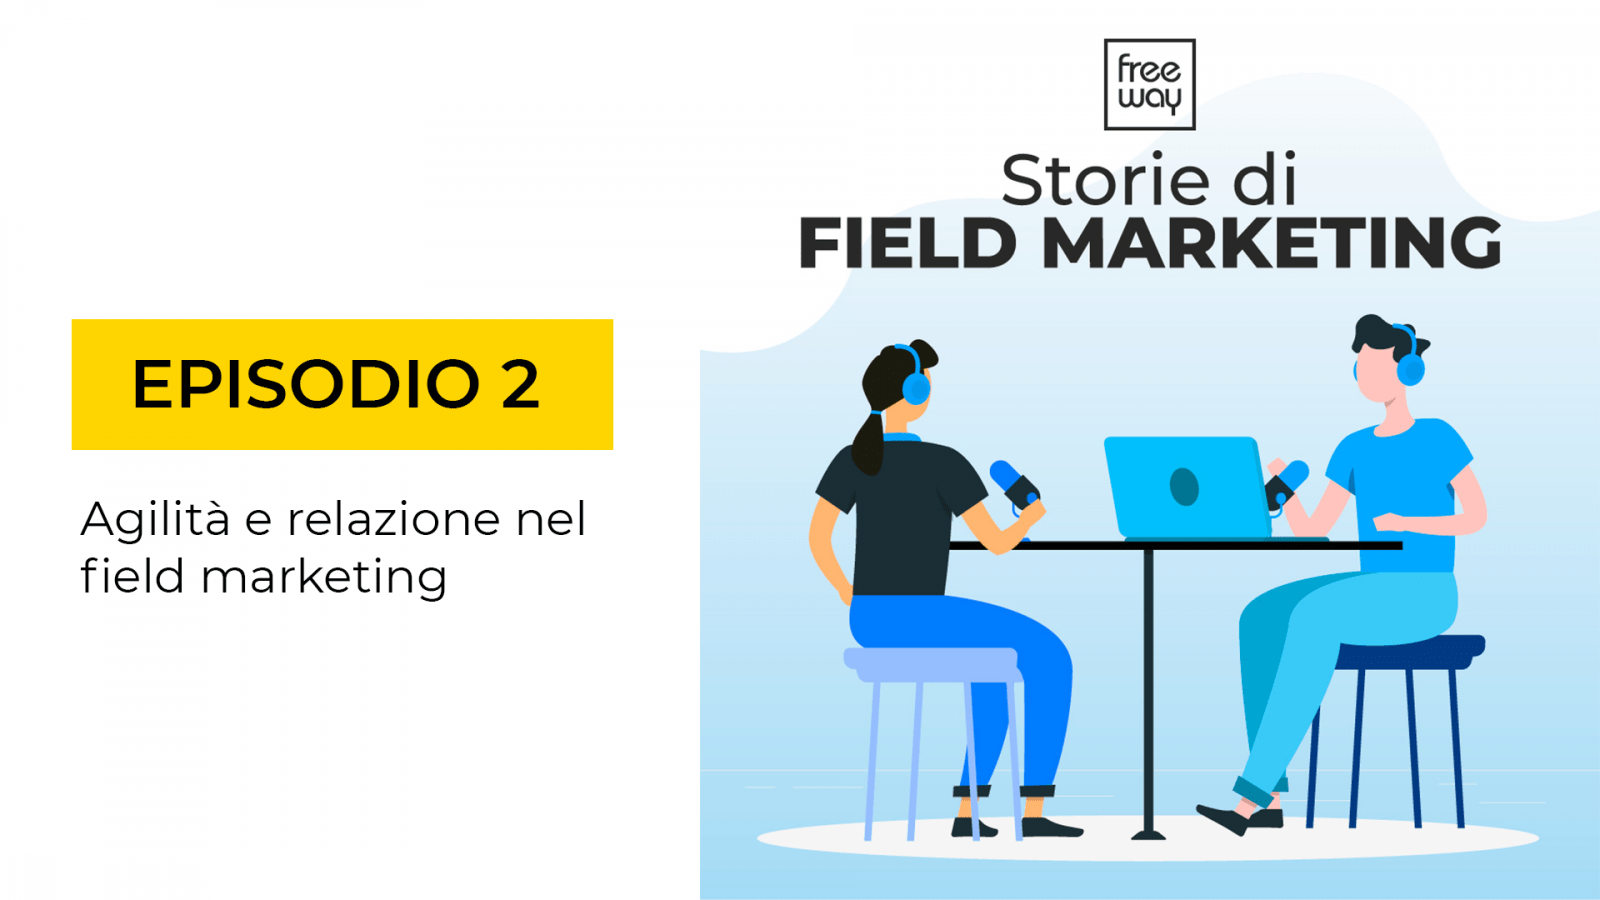 storie di field marketing episodio 2